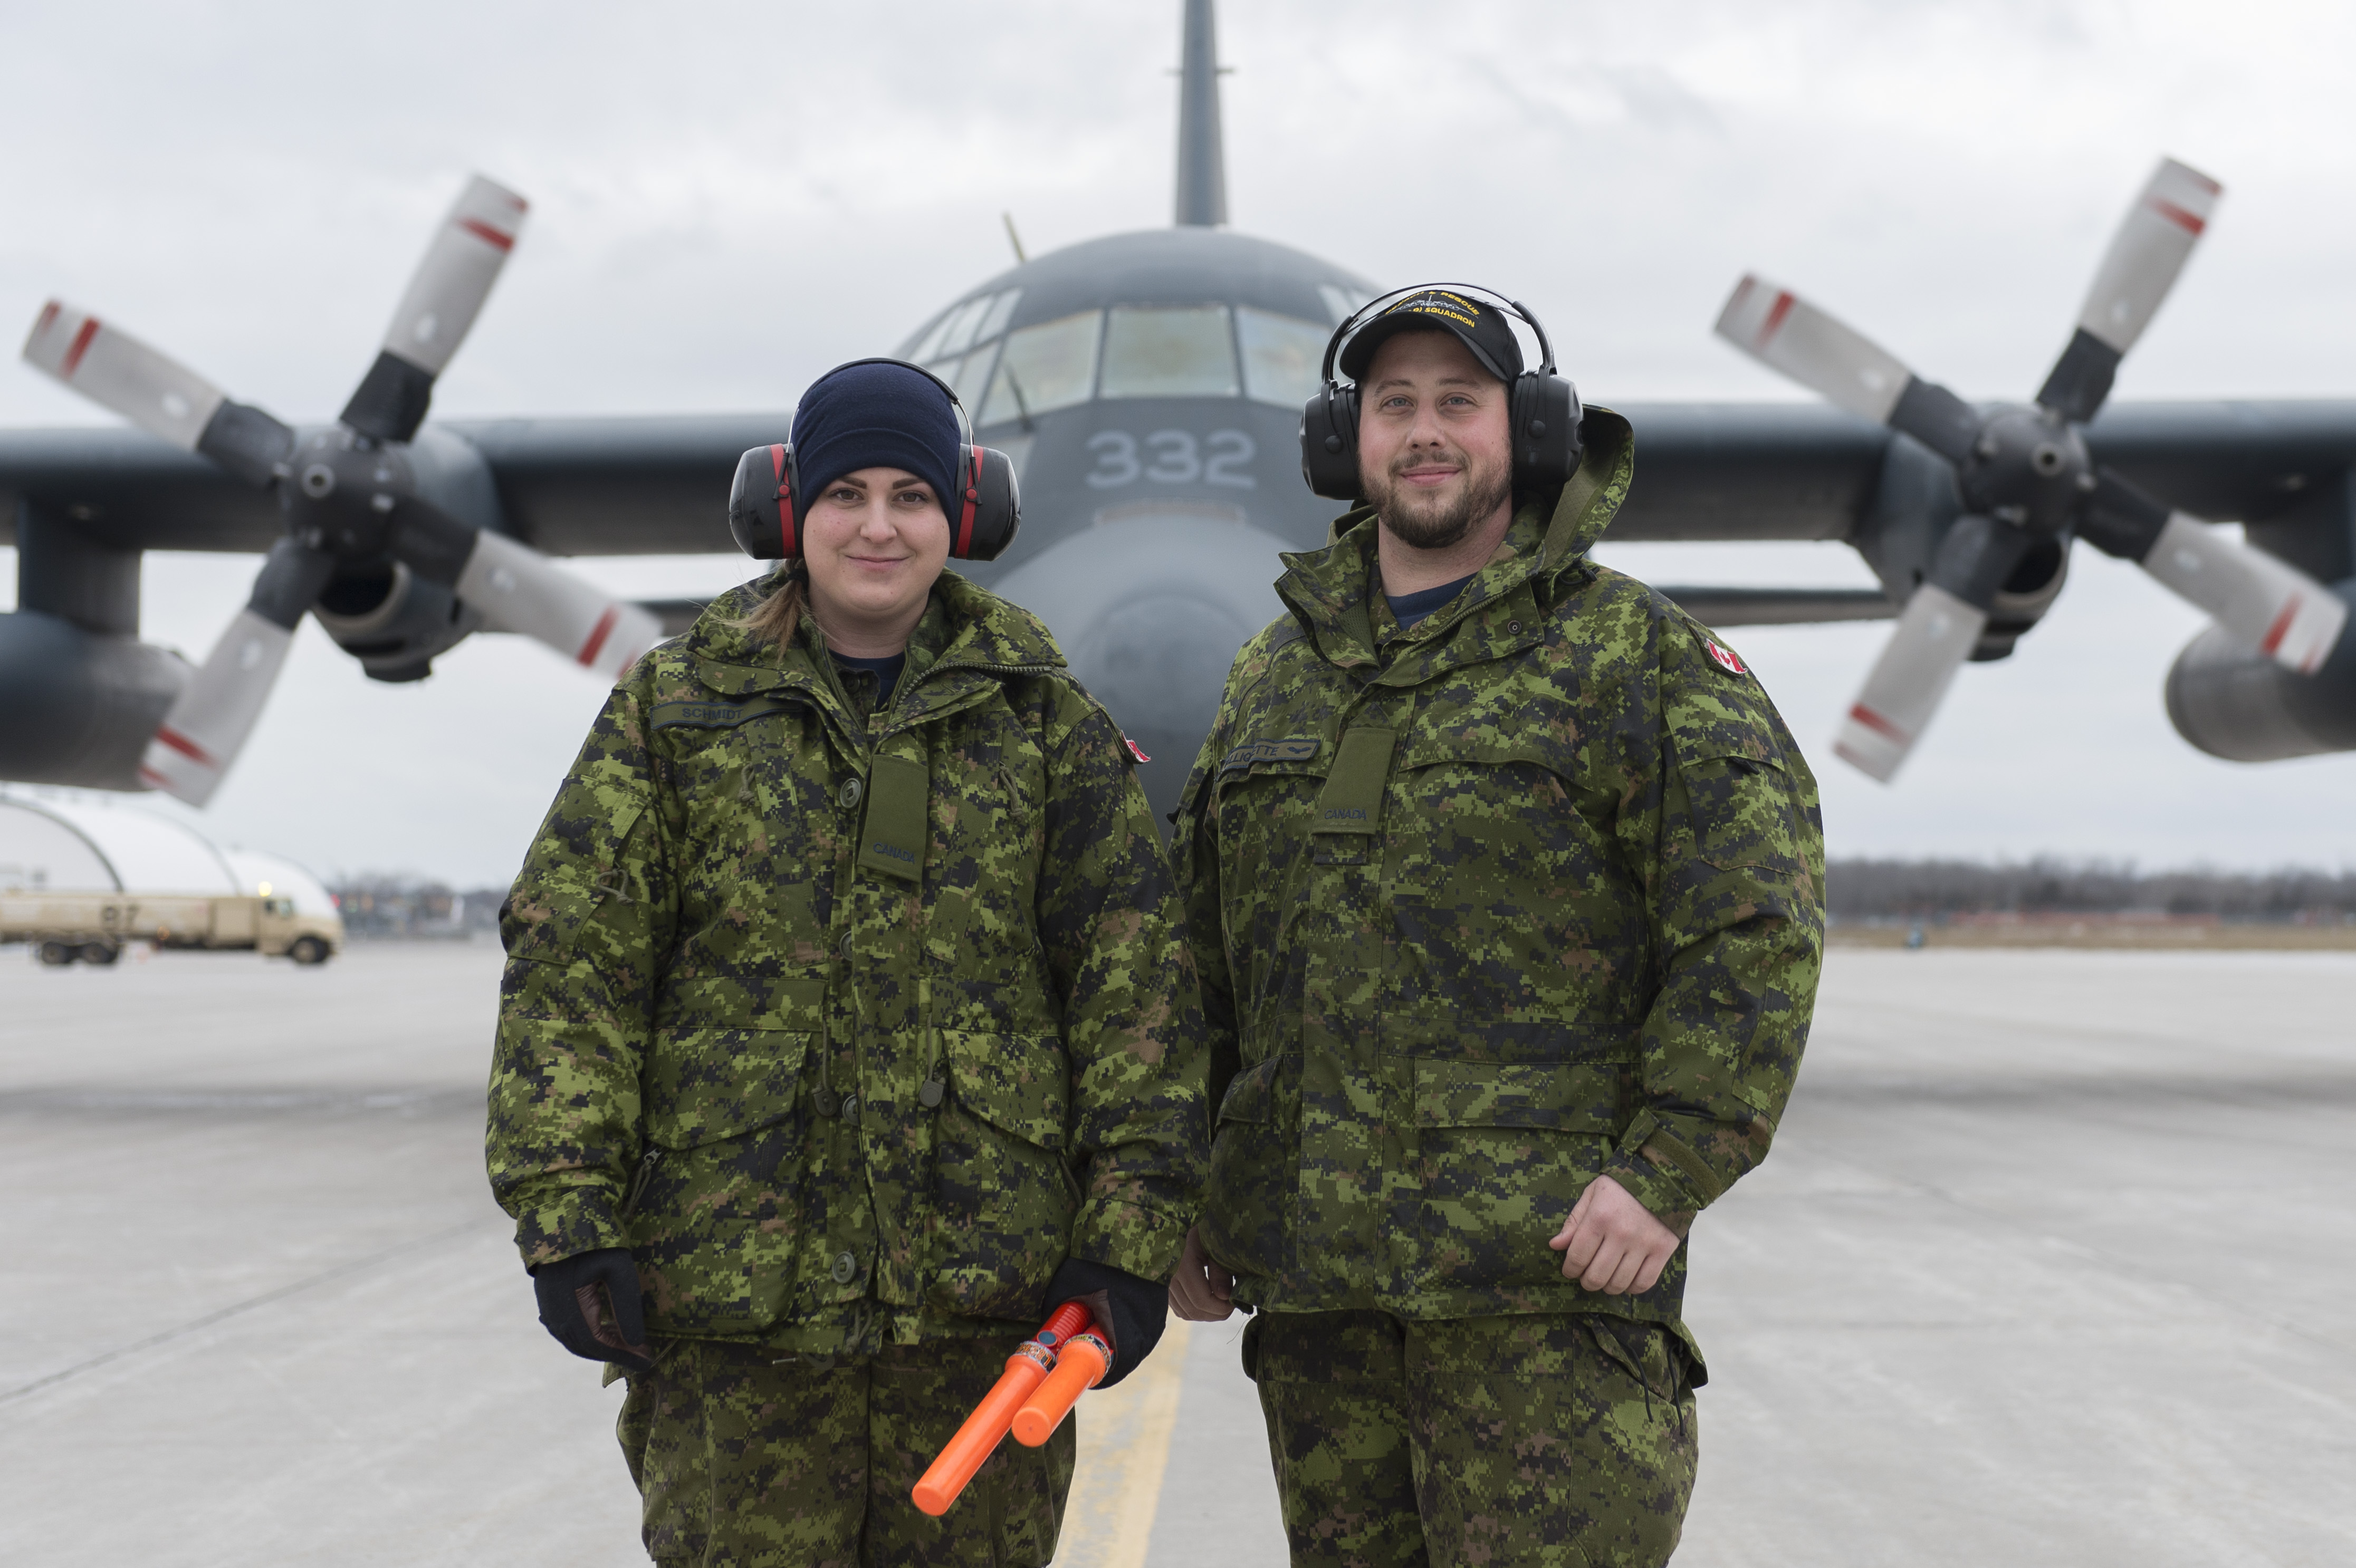 Two Air Operations Support Technicians Aviators